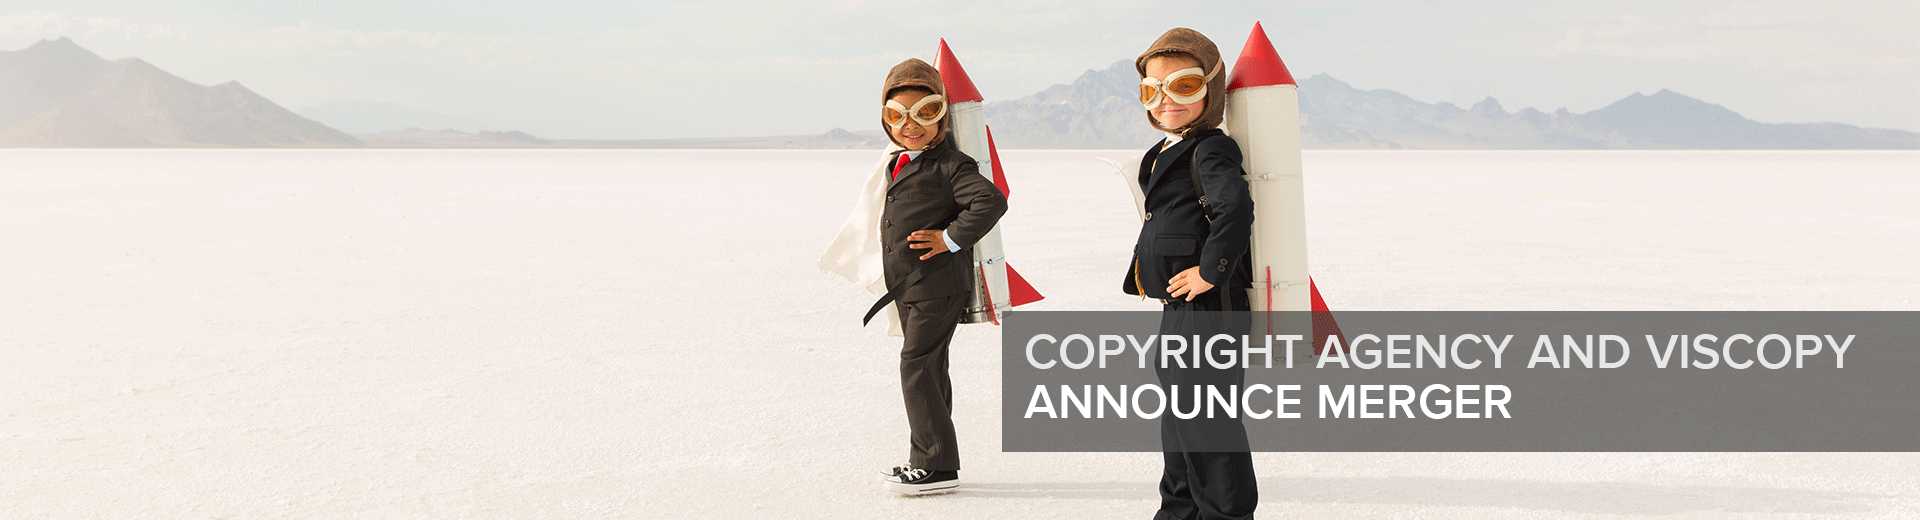 Copyright Agency and Viscopy Announce Merger